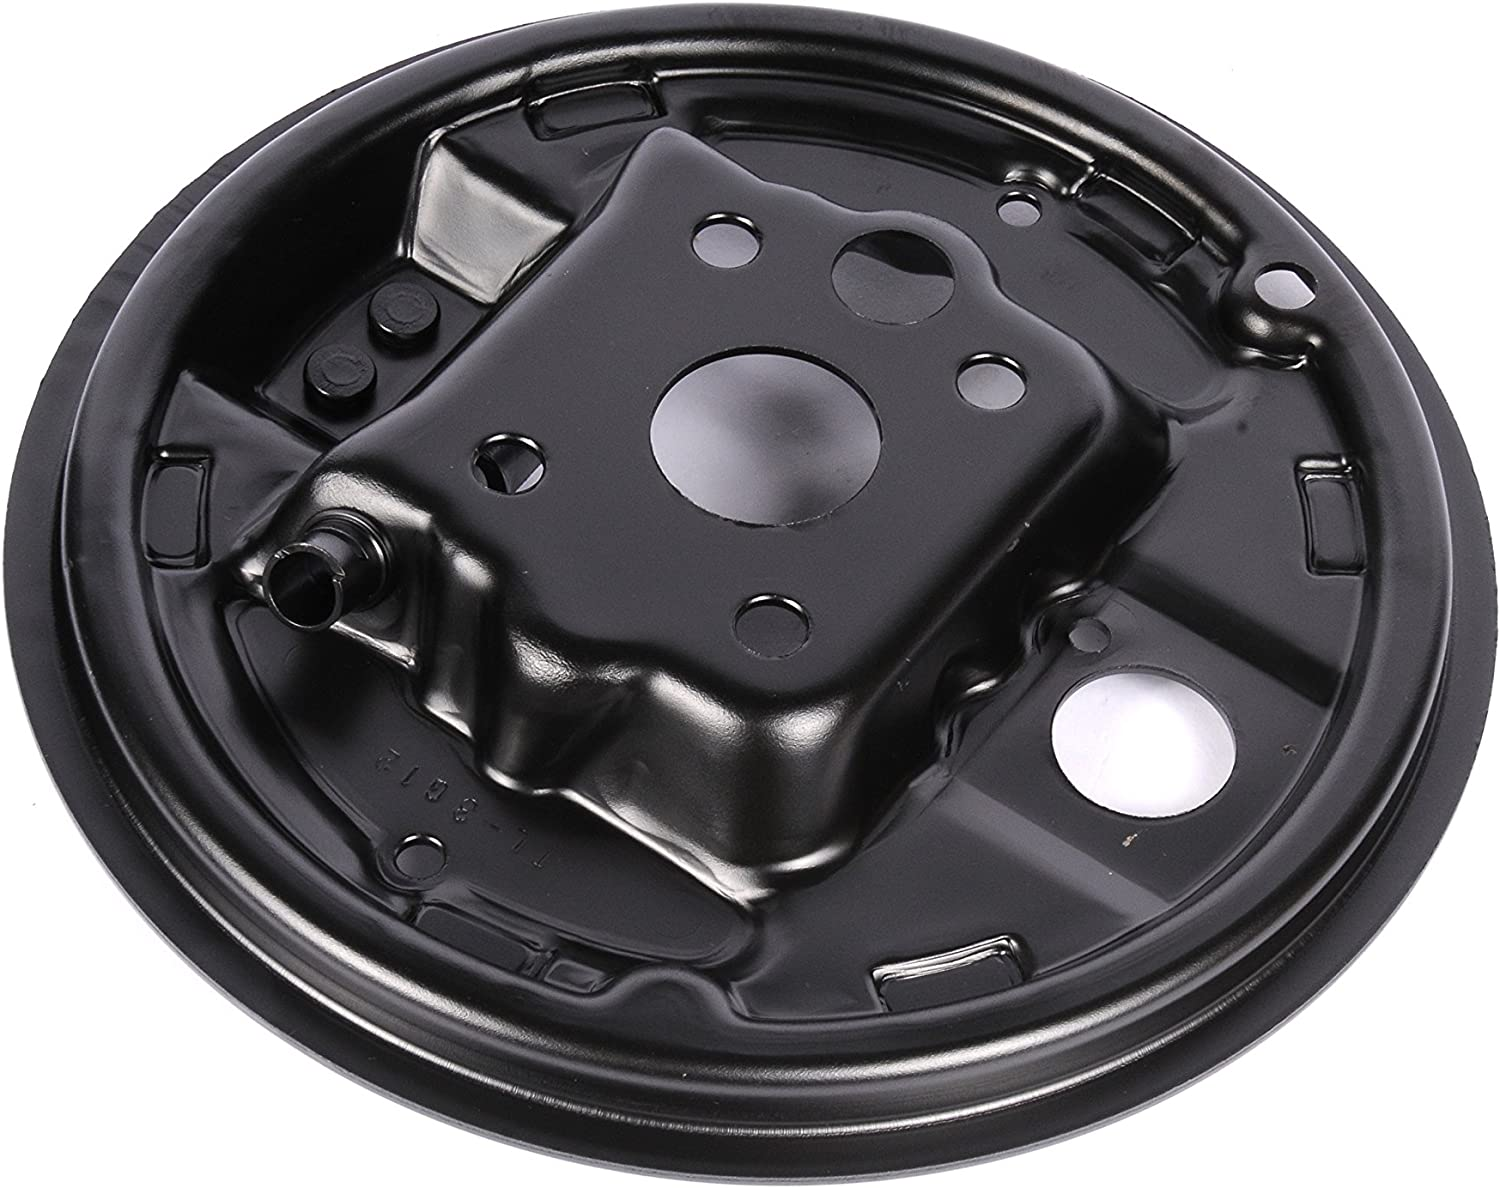 ACDelco 88935986 GM Original Equipment Rear Passenger Side Brake Backing Plate